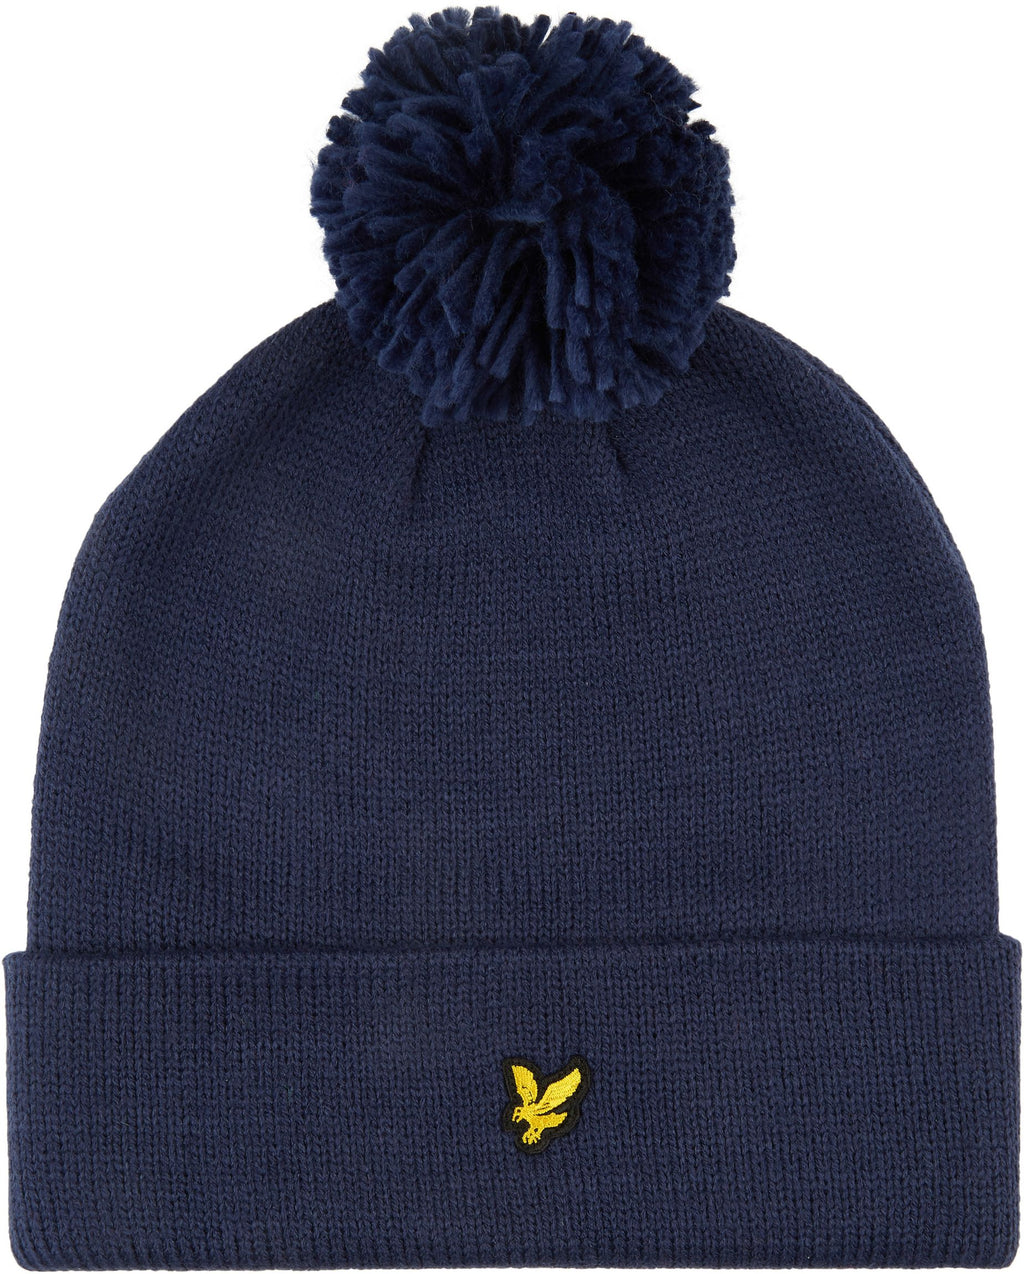 Lyle & Scott Bobble Beanie Hat